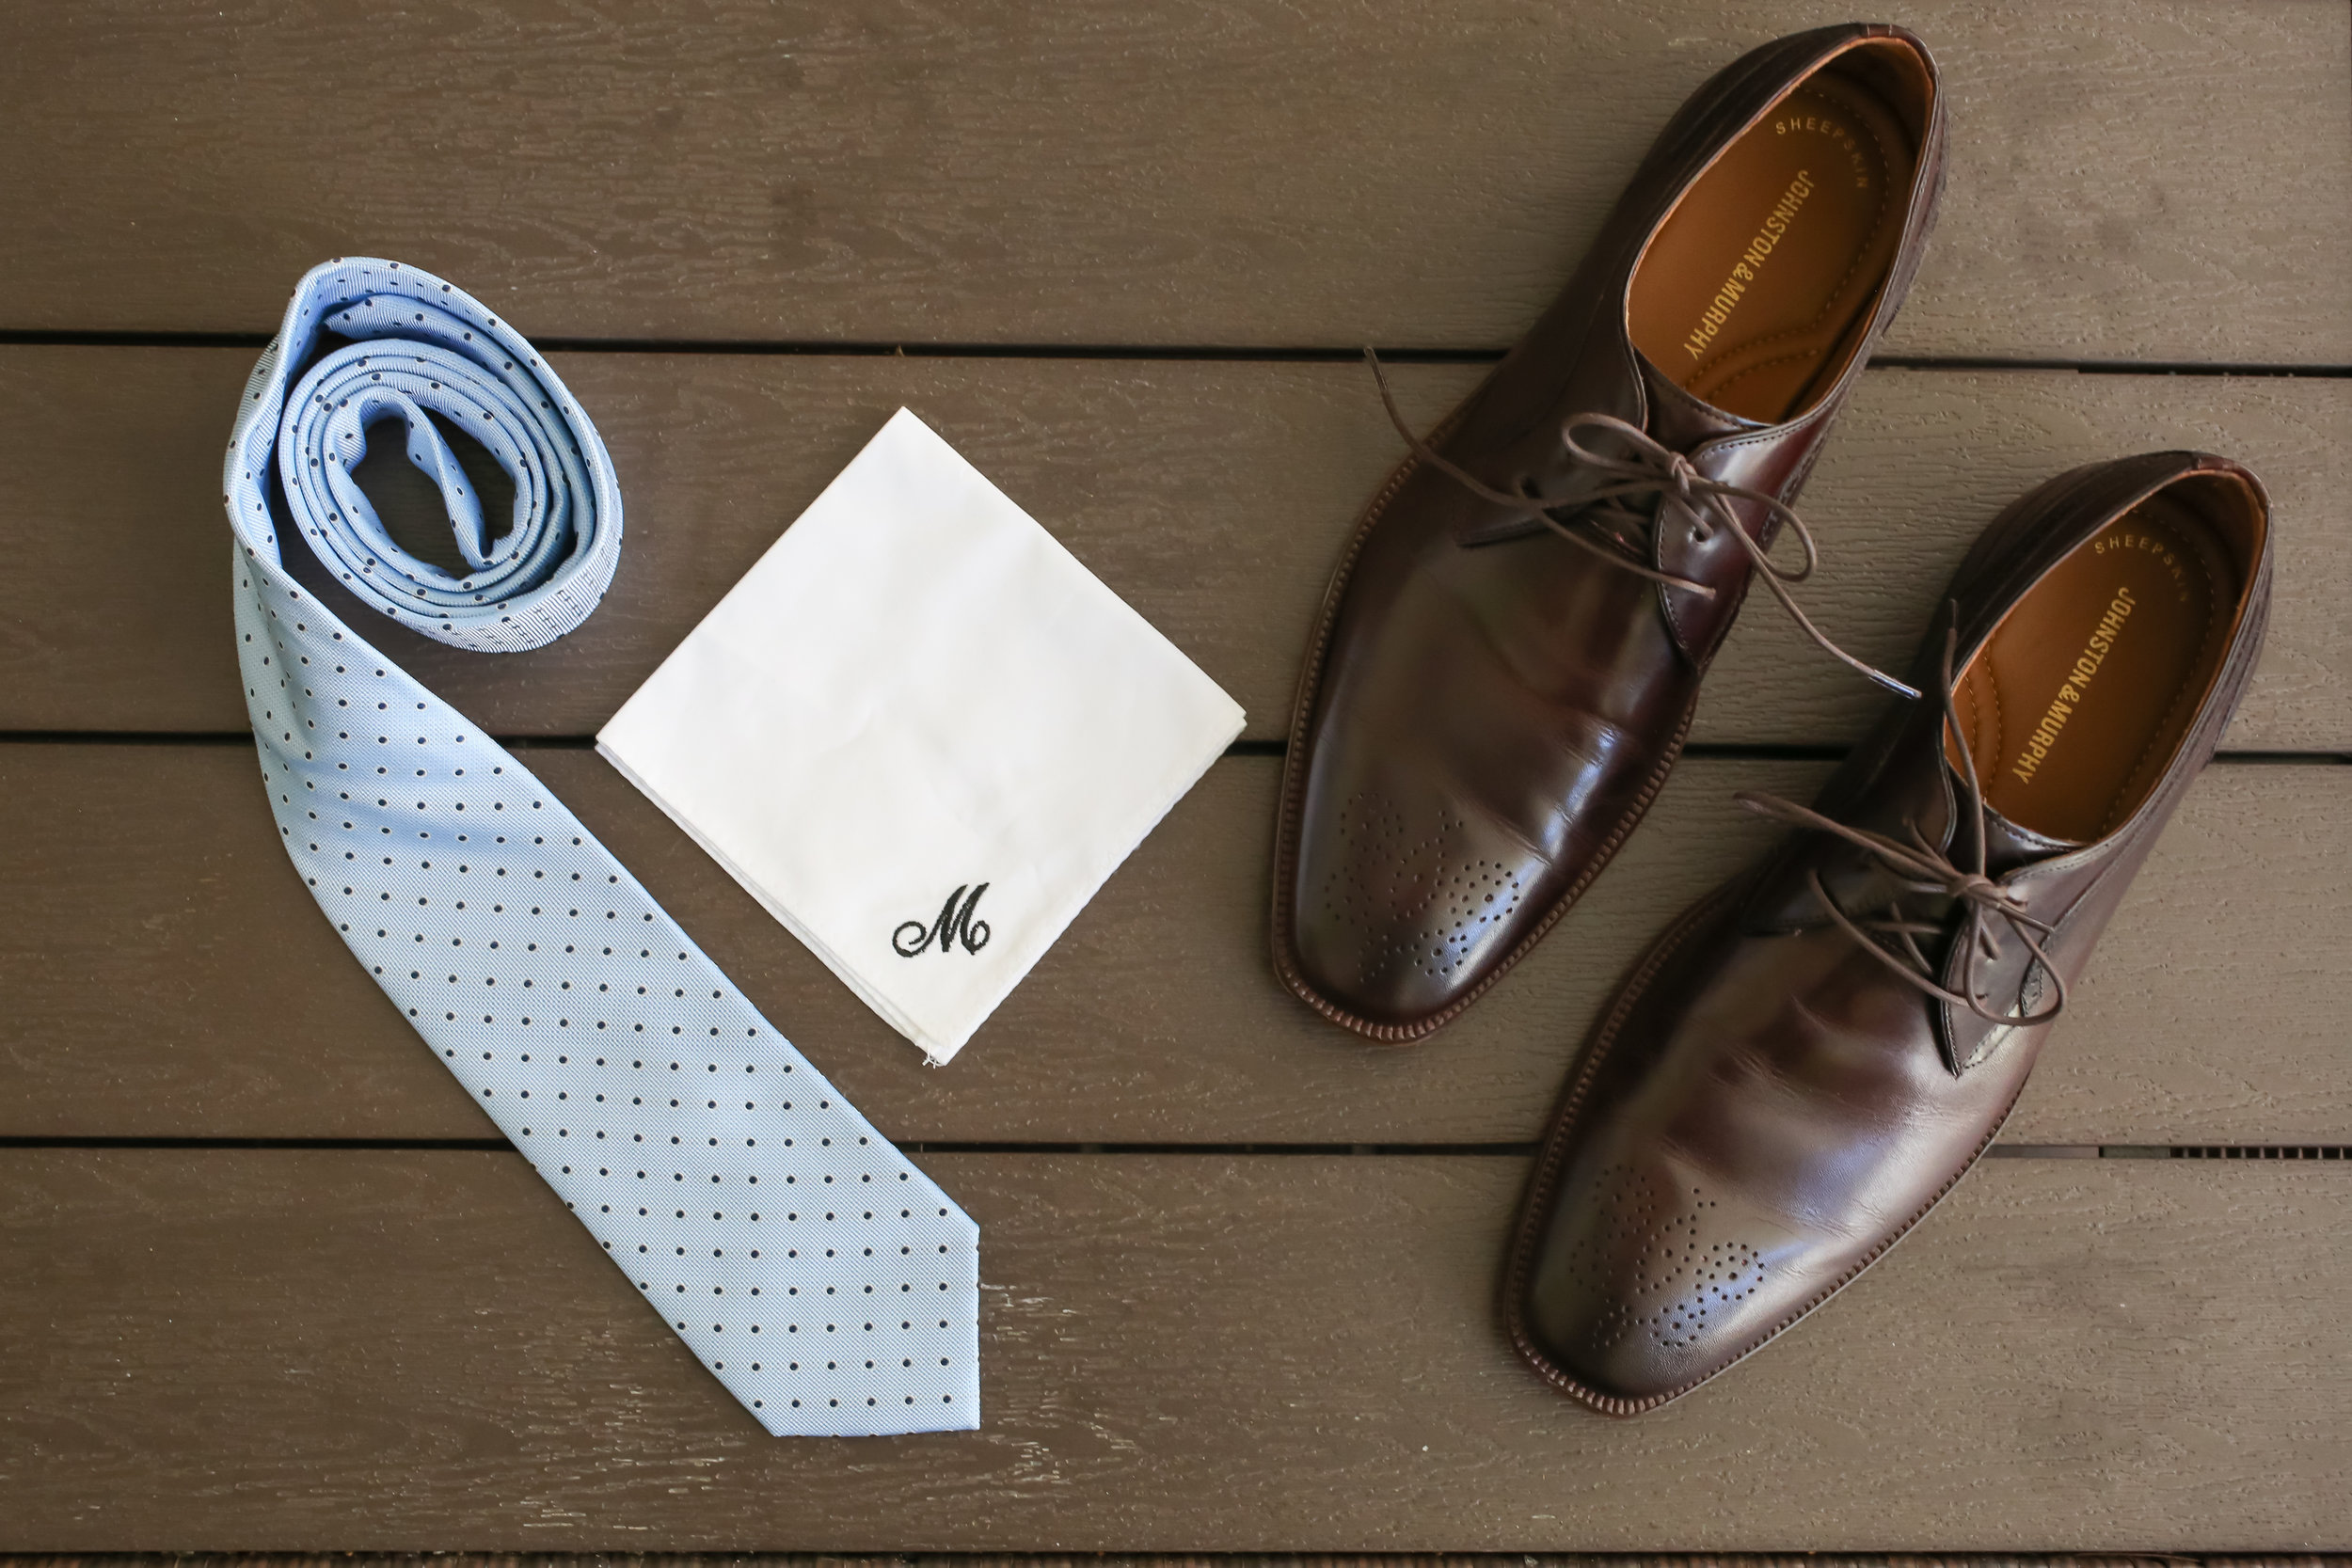 The groom sported a sky blue tie to accent his navy suit, and a custom monogramed pocket square.